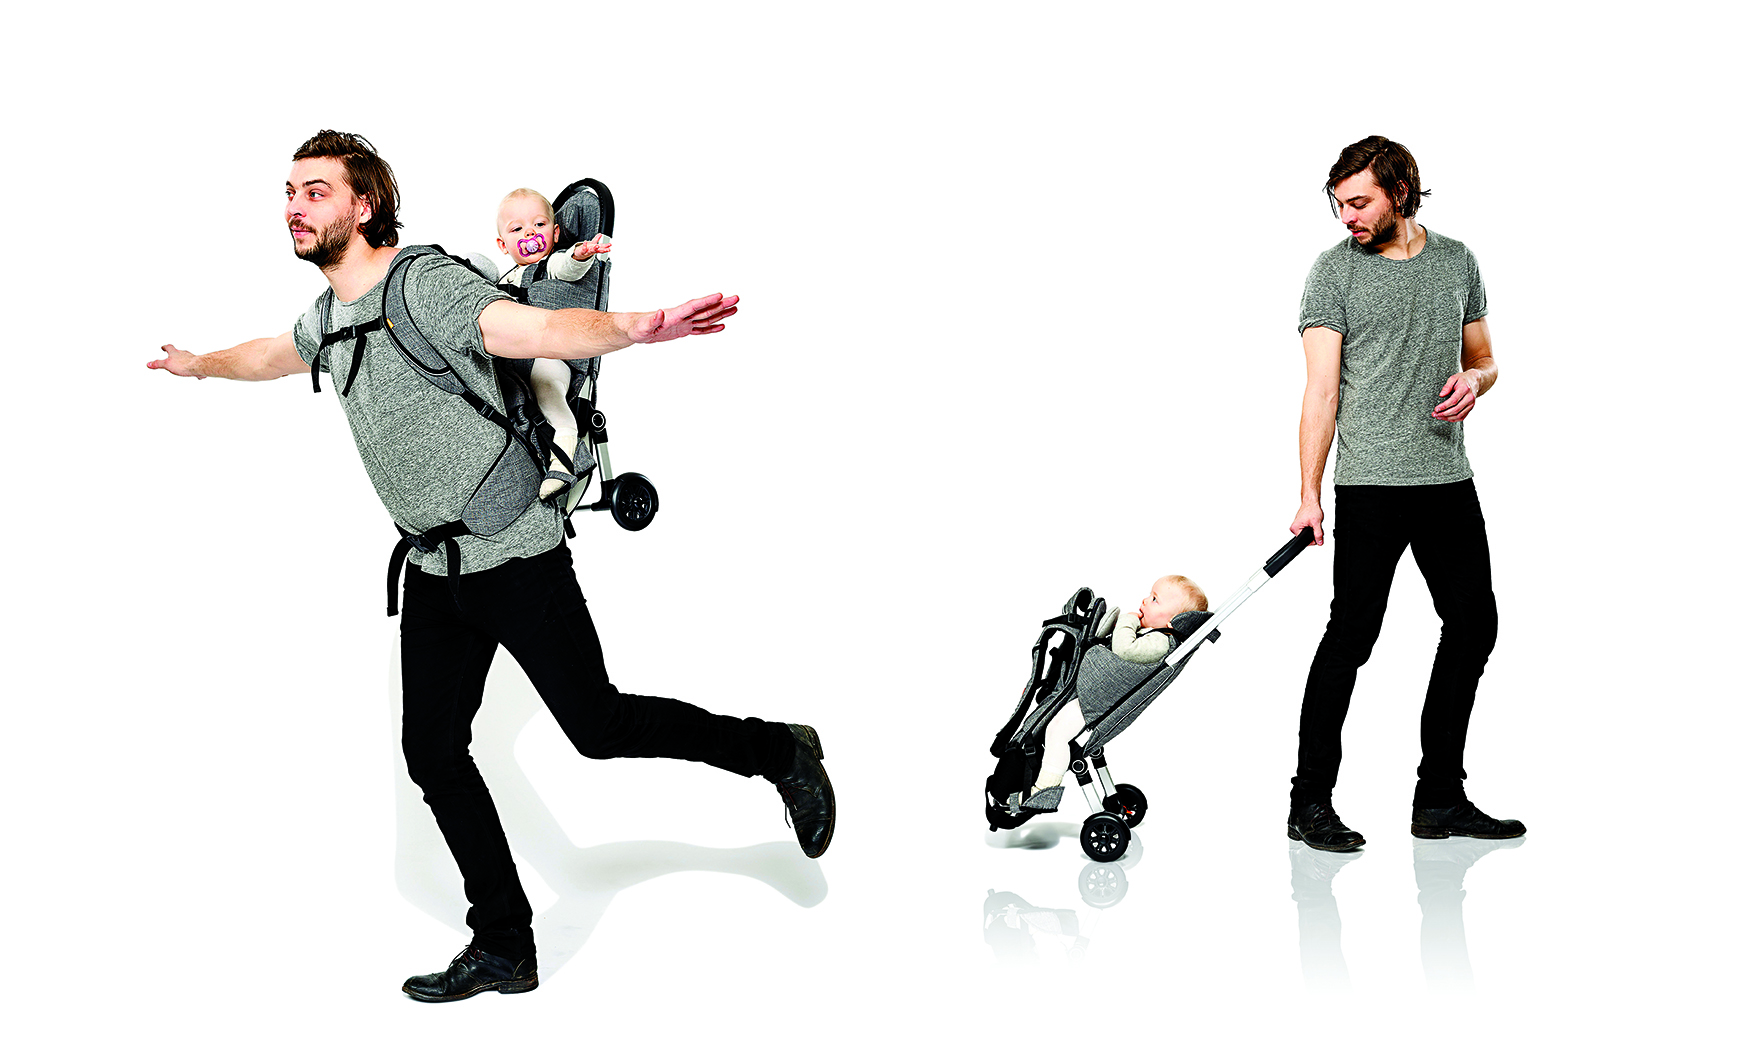 Go, The Adaptable Child Carrier